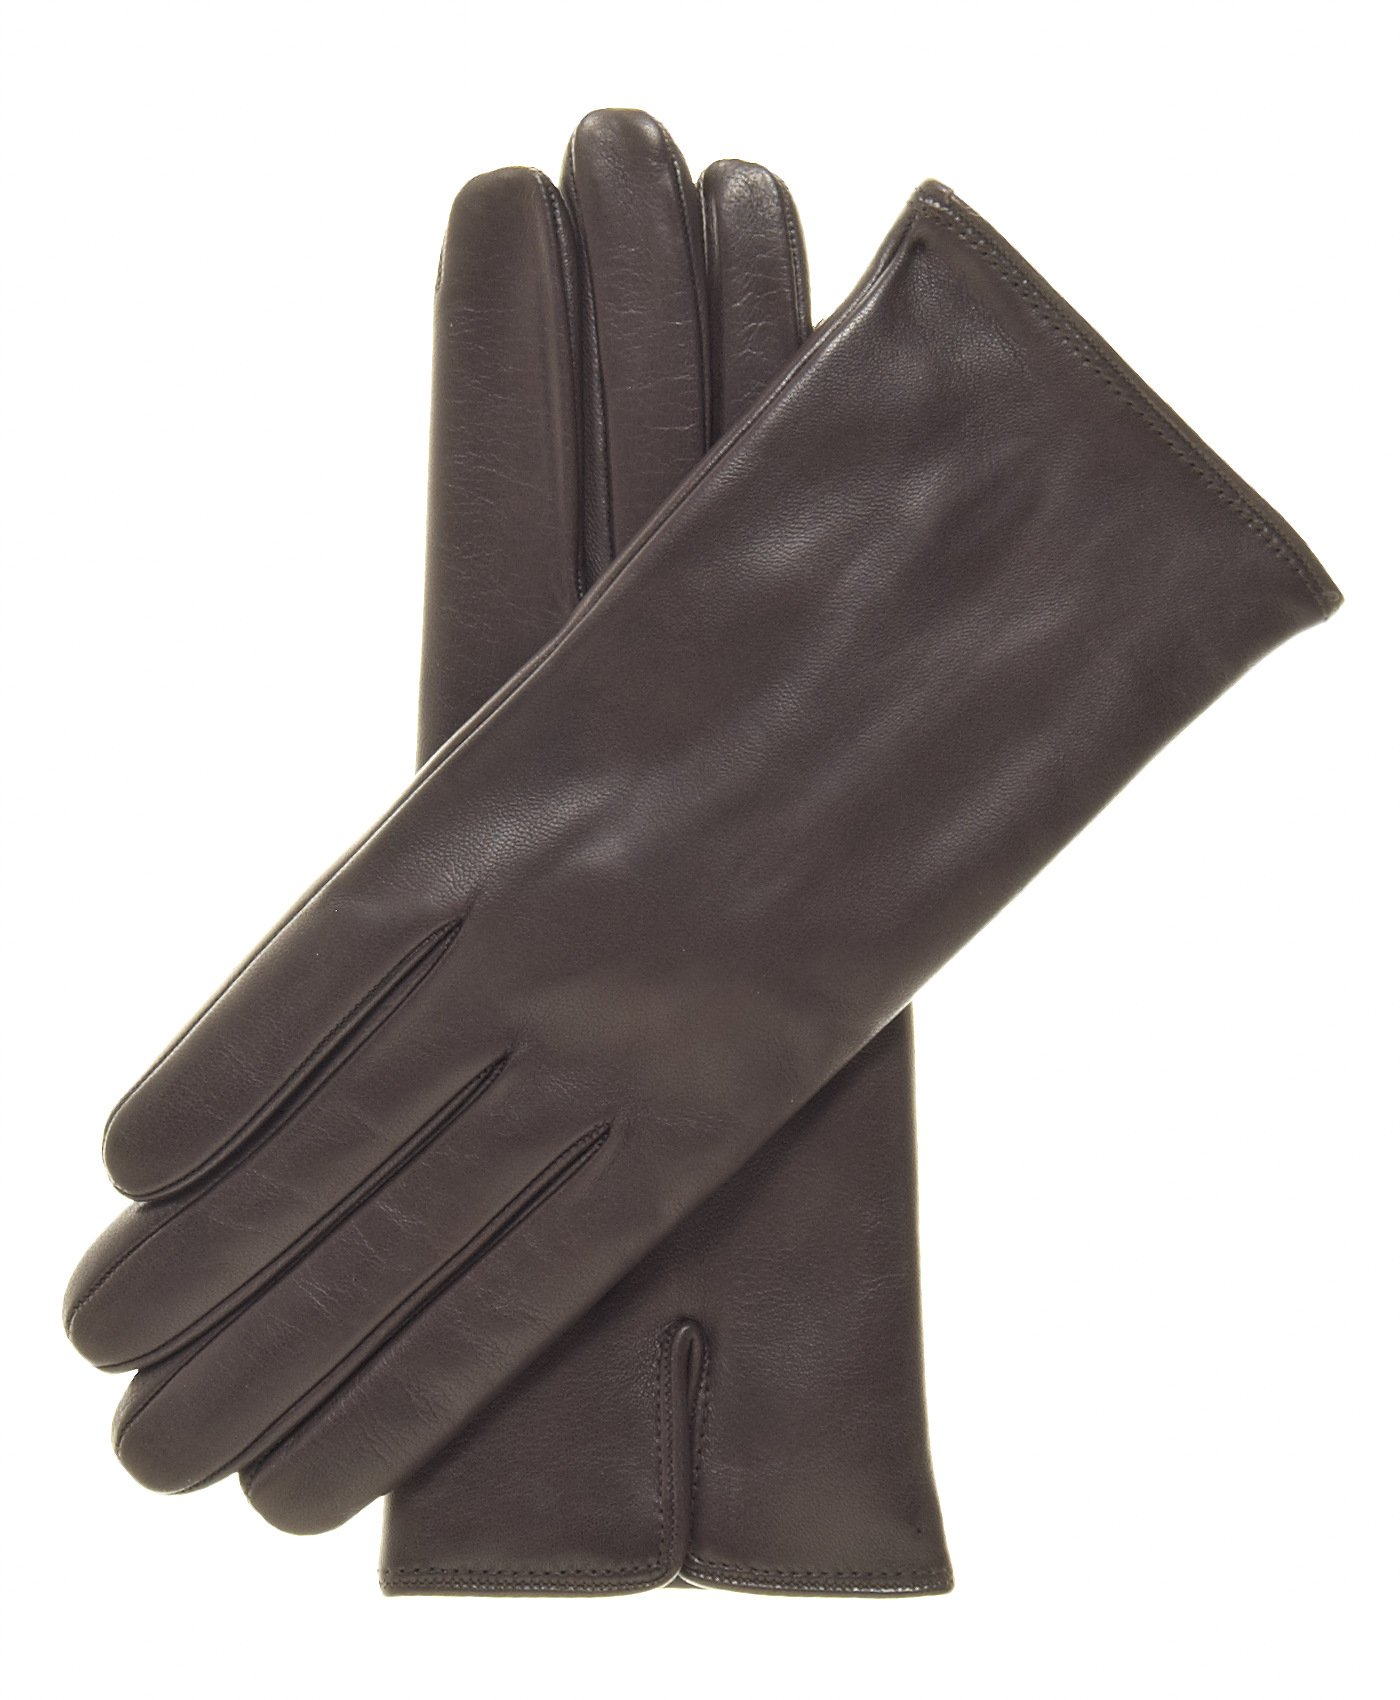 Fratelli Orsini Women's Italian Cashmere Lined Leather Gloves Size 7 1/2 Color Dark Brown by Fratelli Orsini